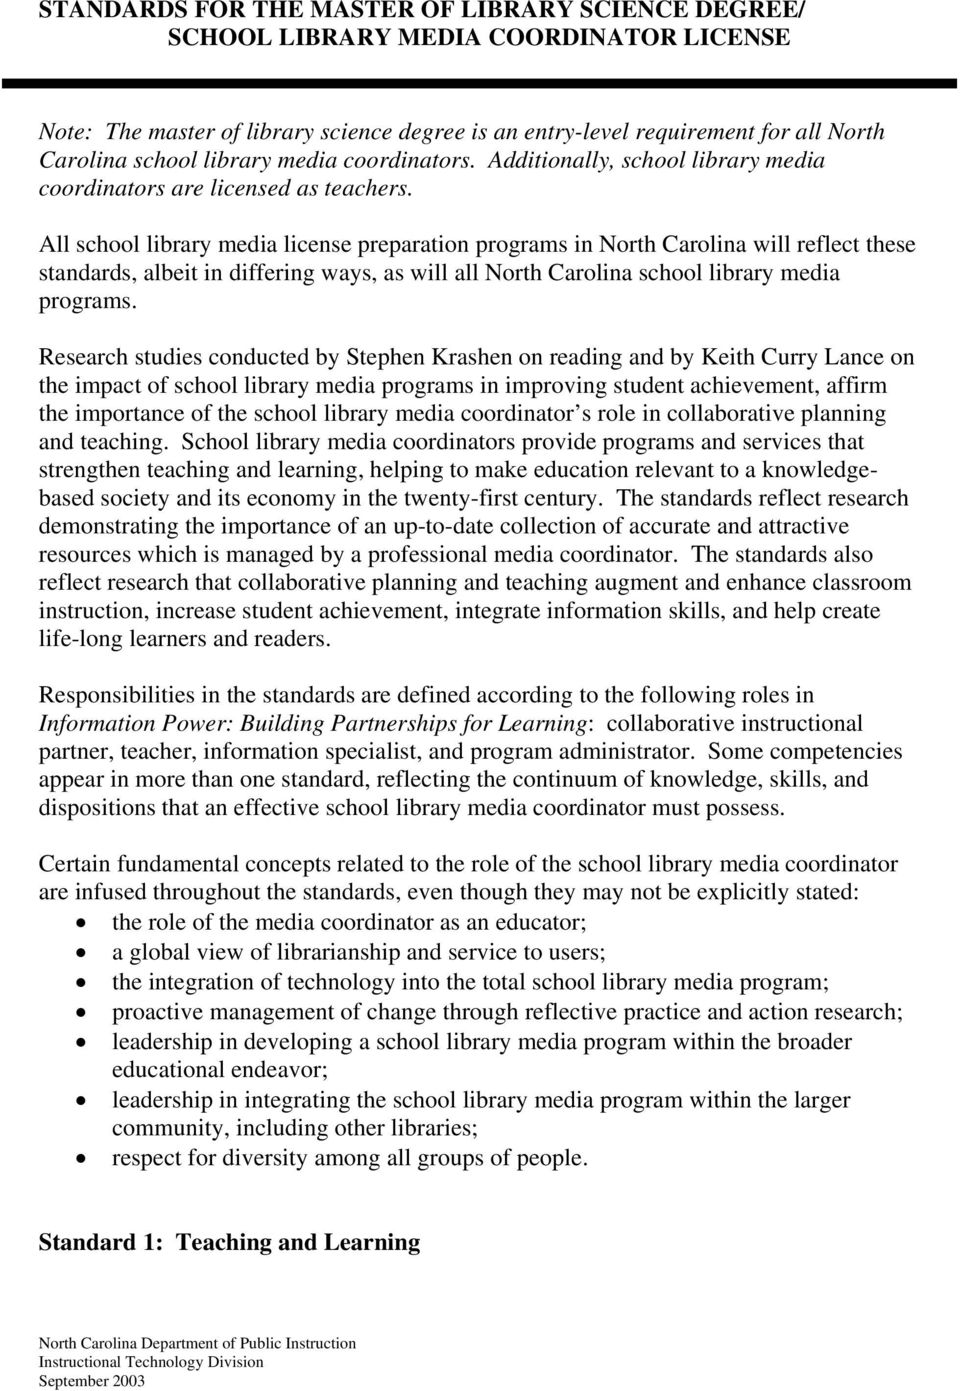 All school library media license preparation programs in North Carolina will reflect these standards, albeit in differing ways, as will all North Carolina school library media programs.